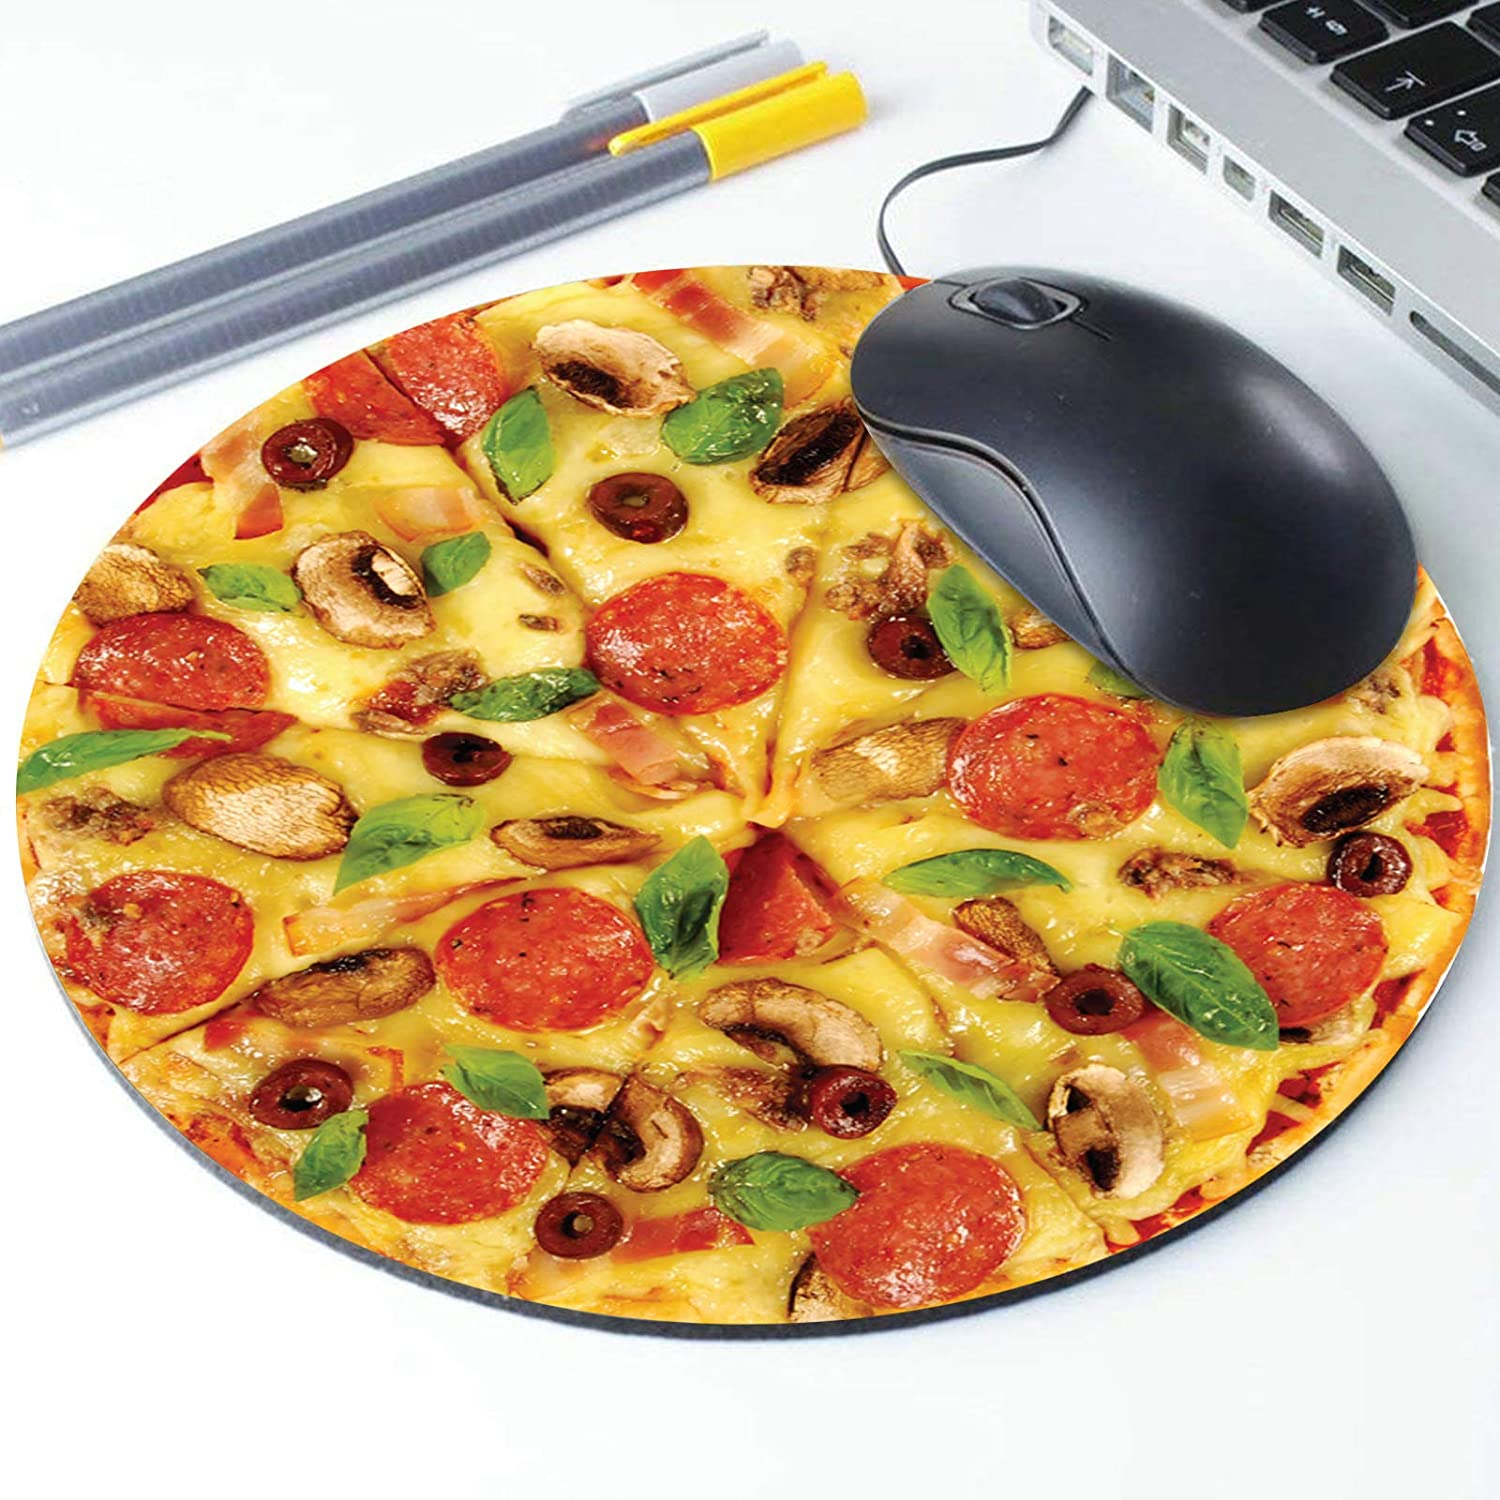 Pepperoni Cheesy Pizza Pattern Round Ergonomic Mouse Pad Non-Slip Rubber Material for Office Desk Gaming Home Space Decor Pizza Mouse Pad 220mm Diameter